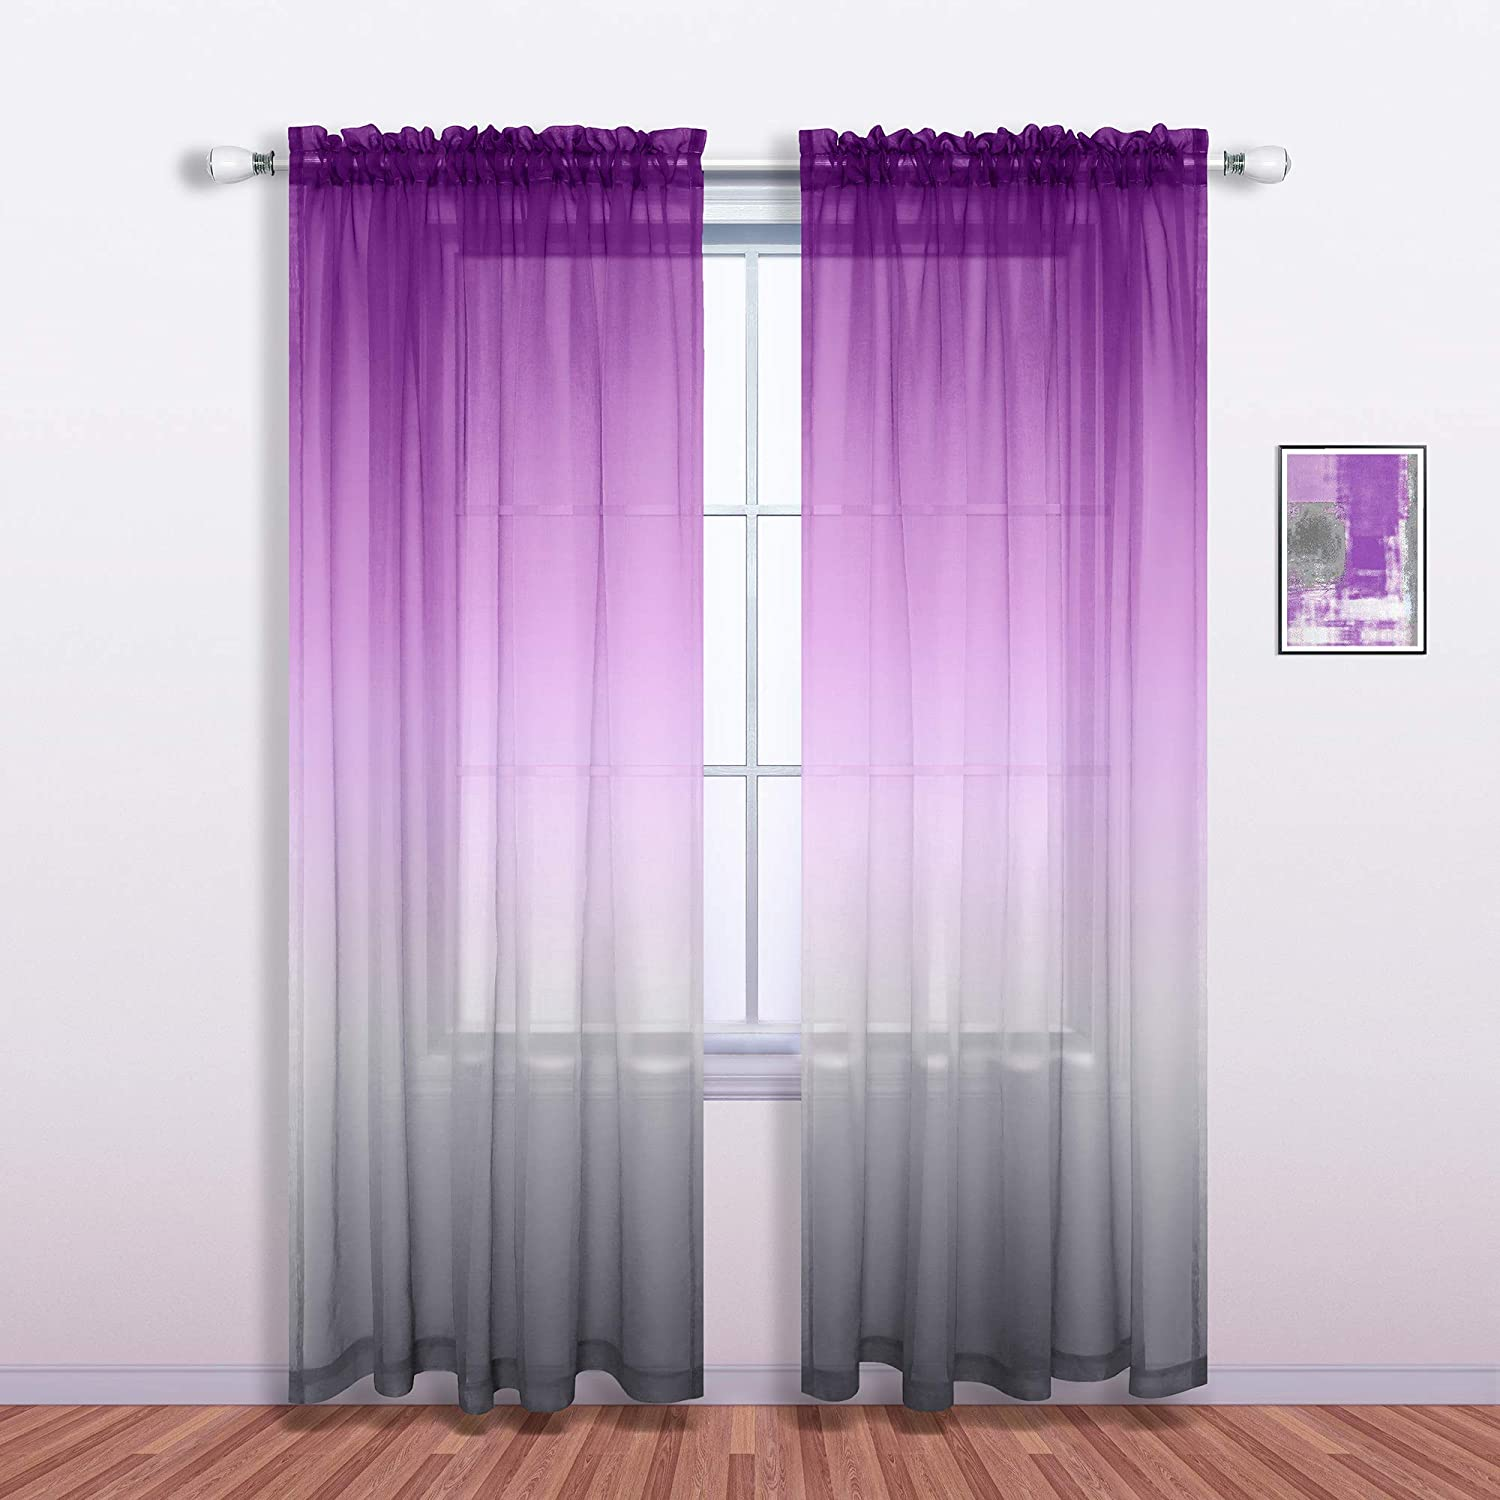 Purple and Grey Curtains for Living Room Decor Set of 1 Single Sheer Window Panel Pocket Ombre Luxury Curtains for Bedroom Kids Girls Women Decorations 52 x 96 Inch Length Royal Lilac and Gray